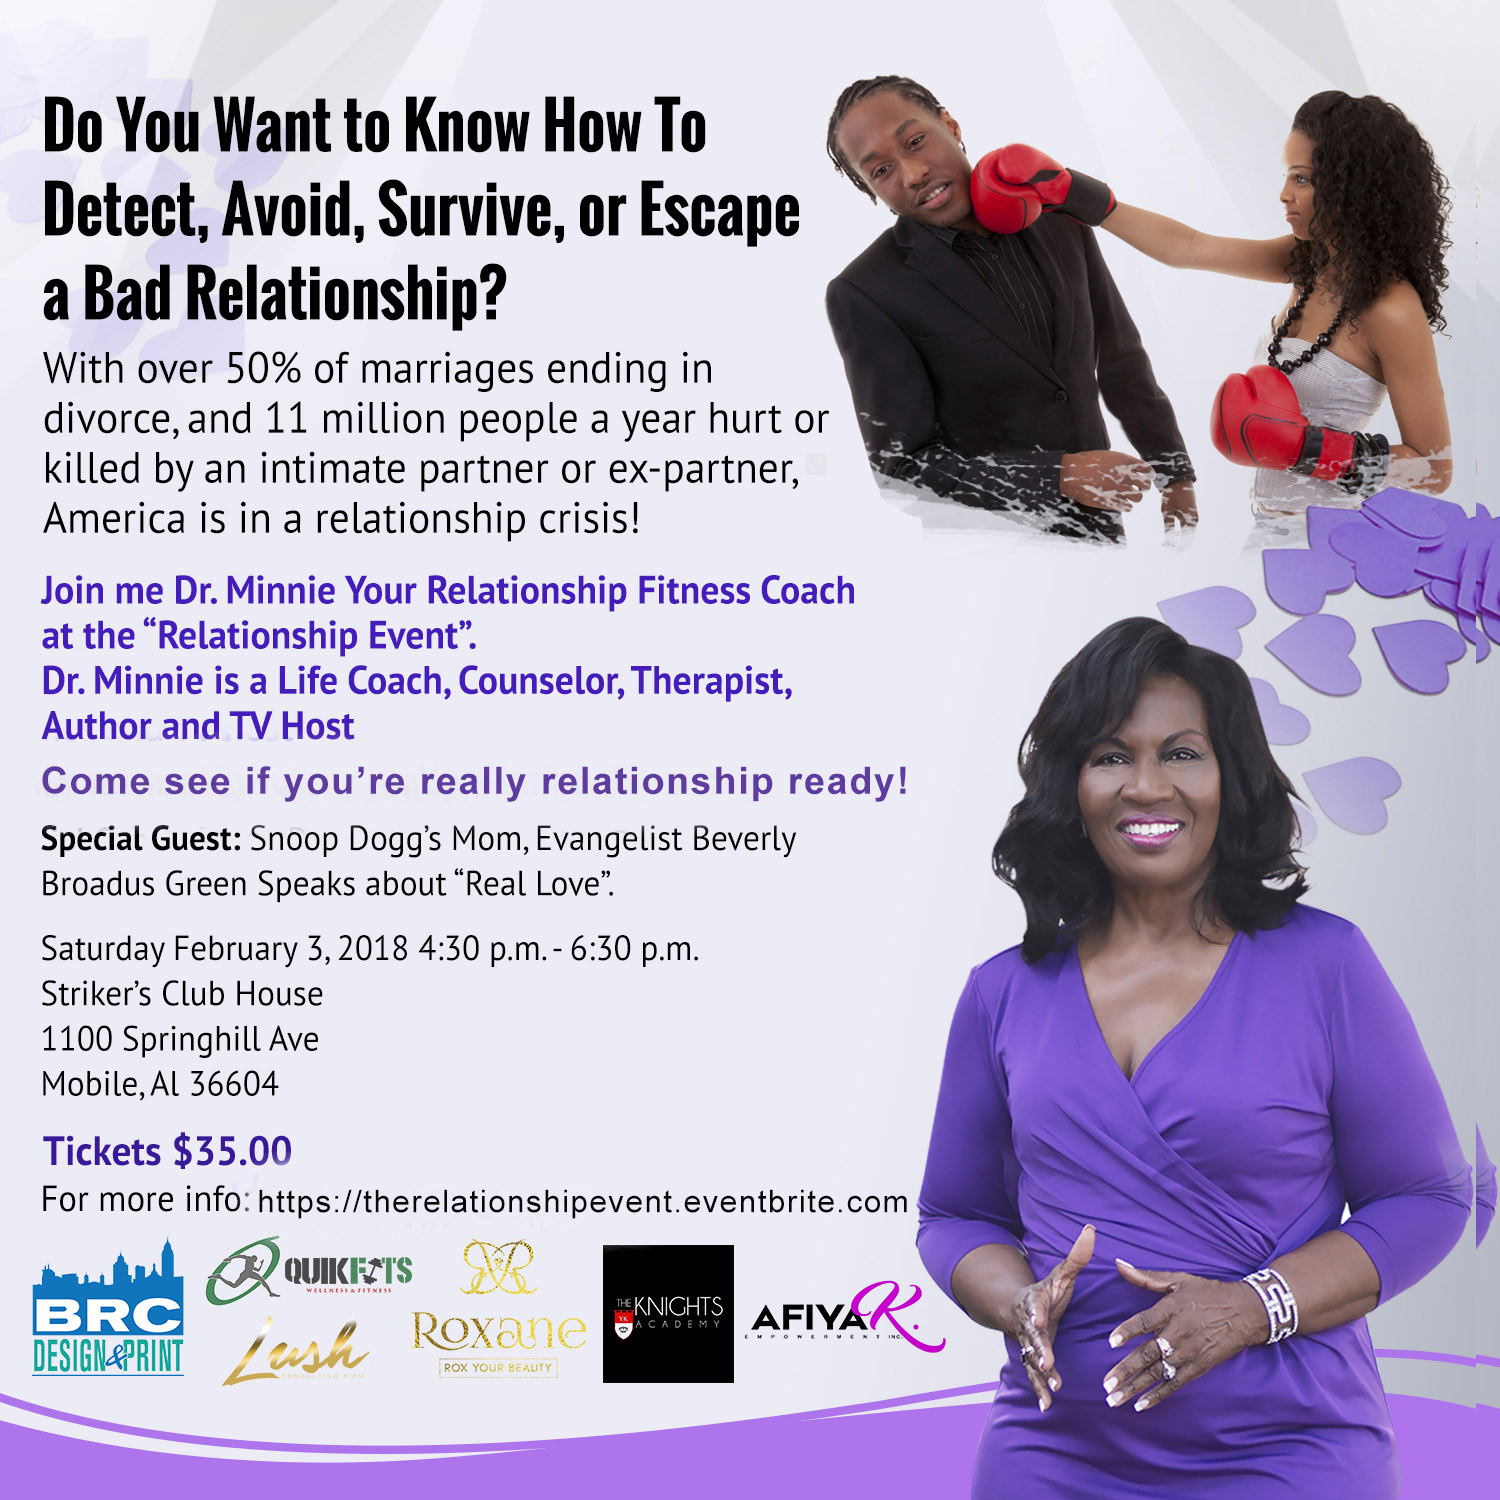 The Relationship Event